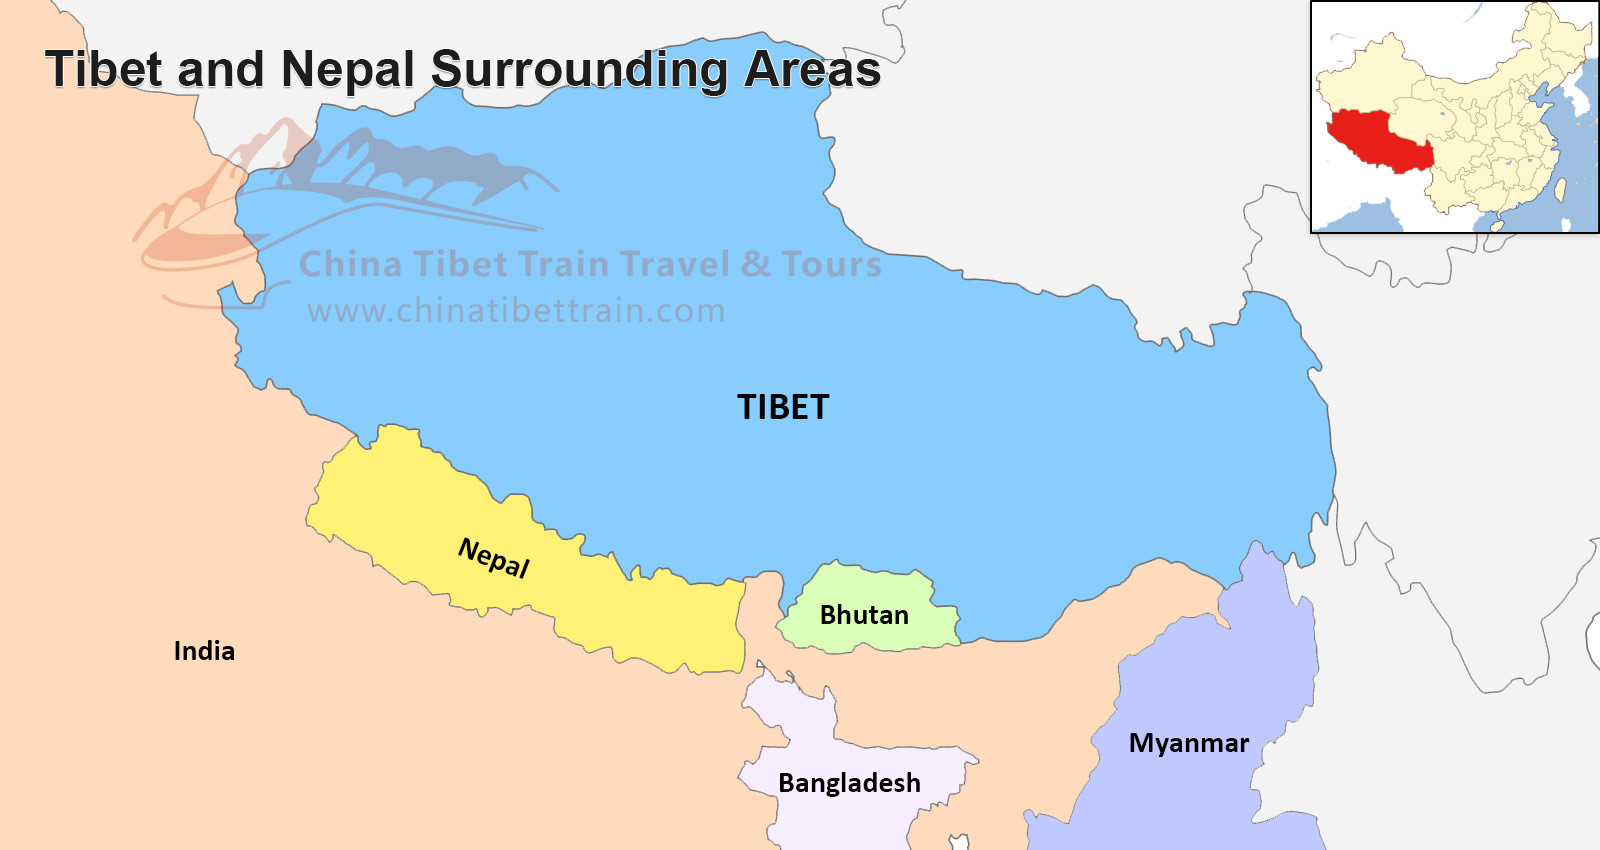 Tibet Location On World Map.Tibet And Nepal Travel Maps Where Is Tibet And Nepal And How To